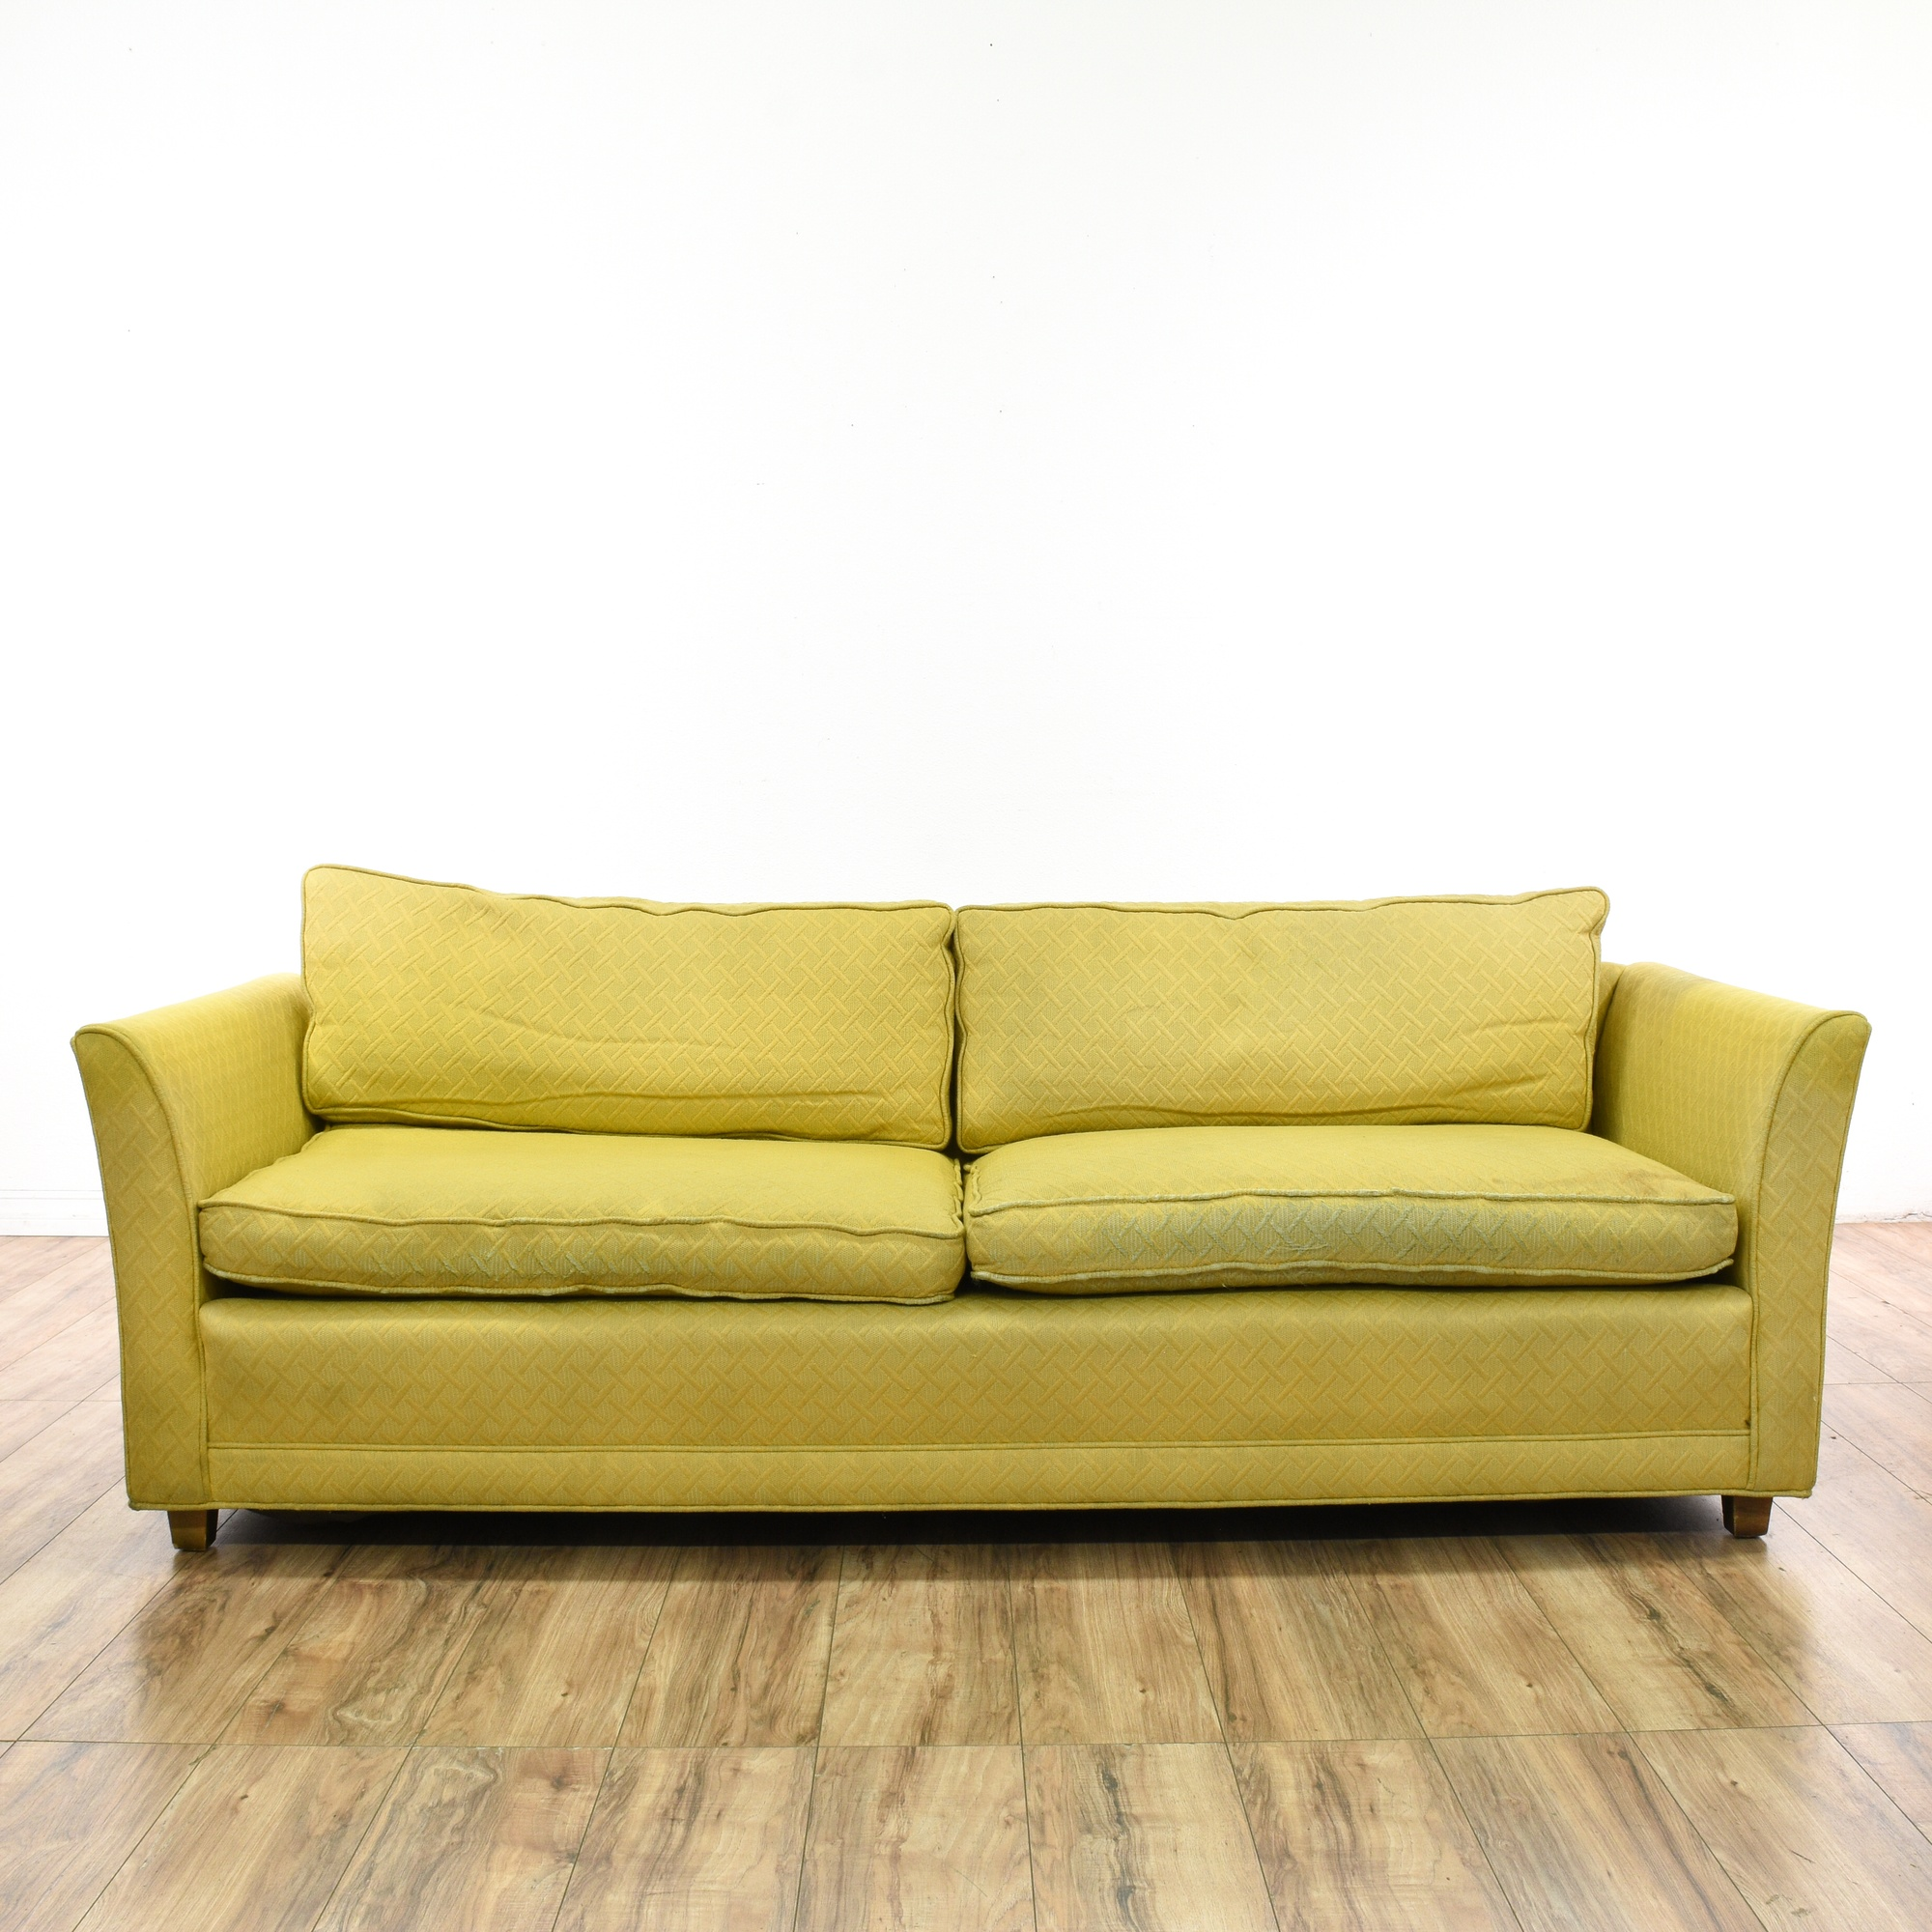 yellow upholstered mid century modern sofa 2 loveseat vintage furniture san diego los angeles. Black Bedroom Furniture Sets. Home Design Ideas